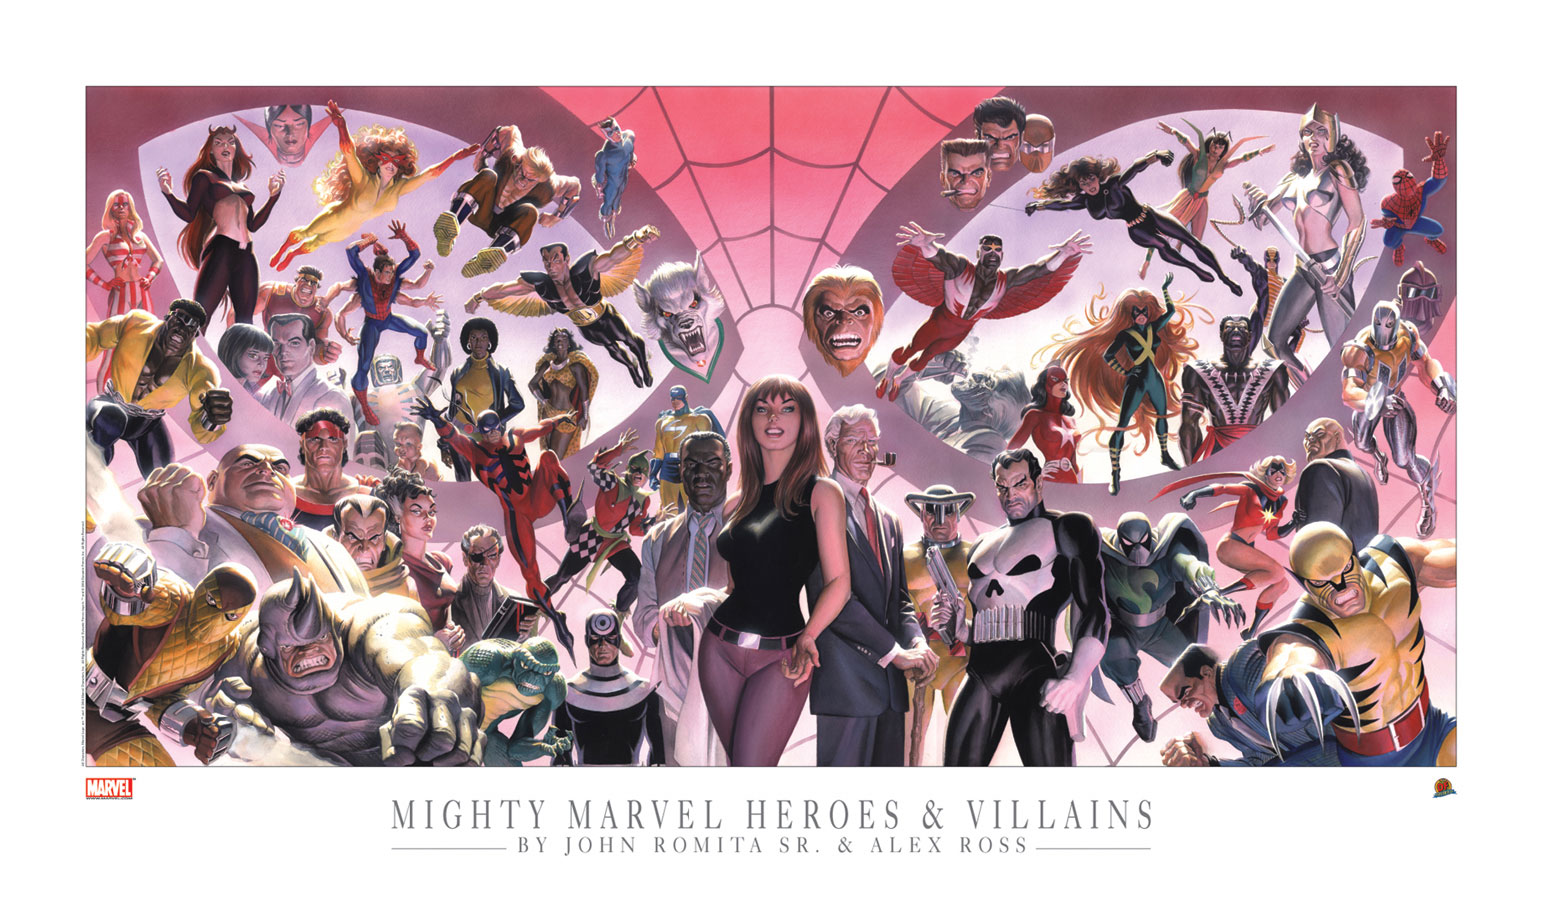 Alex Ross and John Romita Sr Mighty Marvel Heroes and Villains